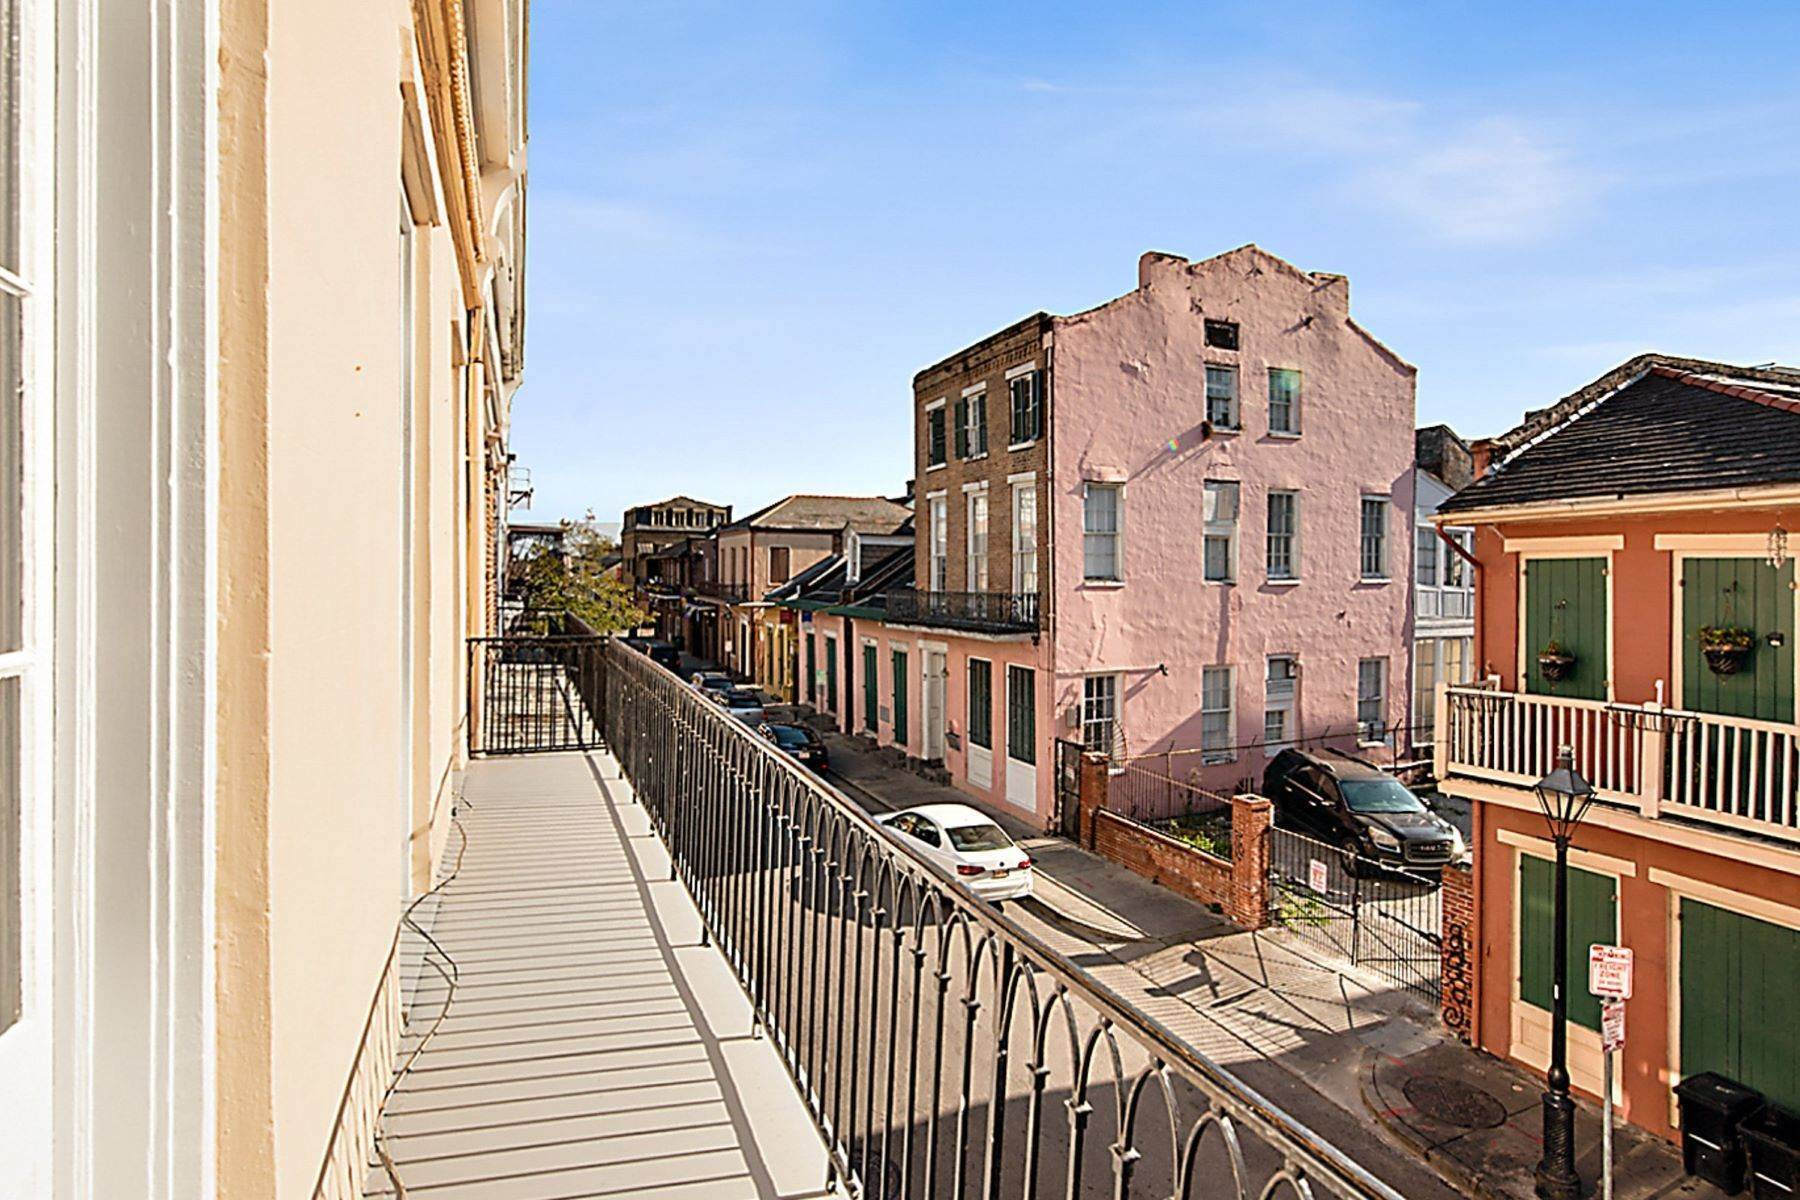 16. Condominiums for Sale at 407 Burgundy Street, Unit 2 407 Burgundy St, Unit 2 New Orleans, Louisiana 70112 United States